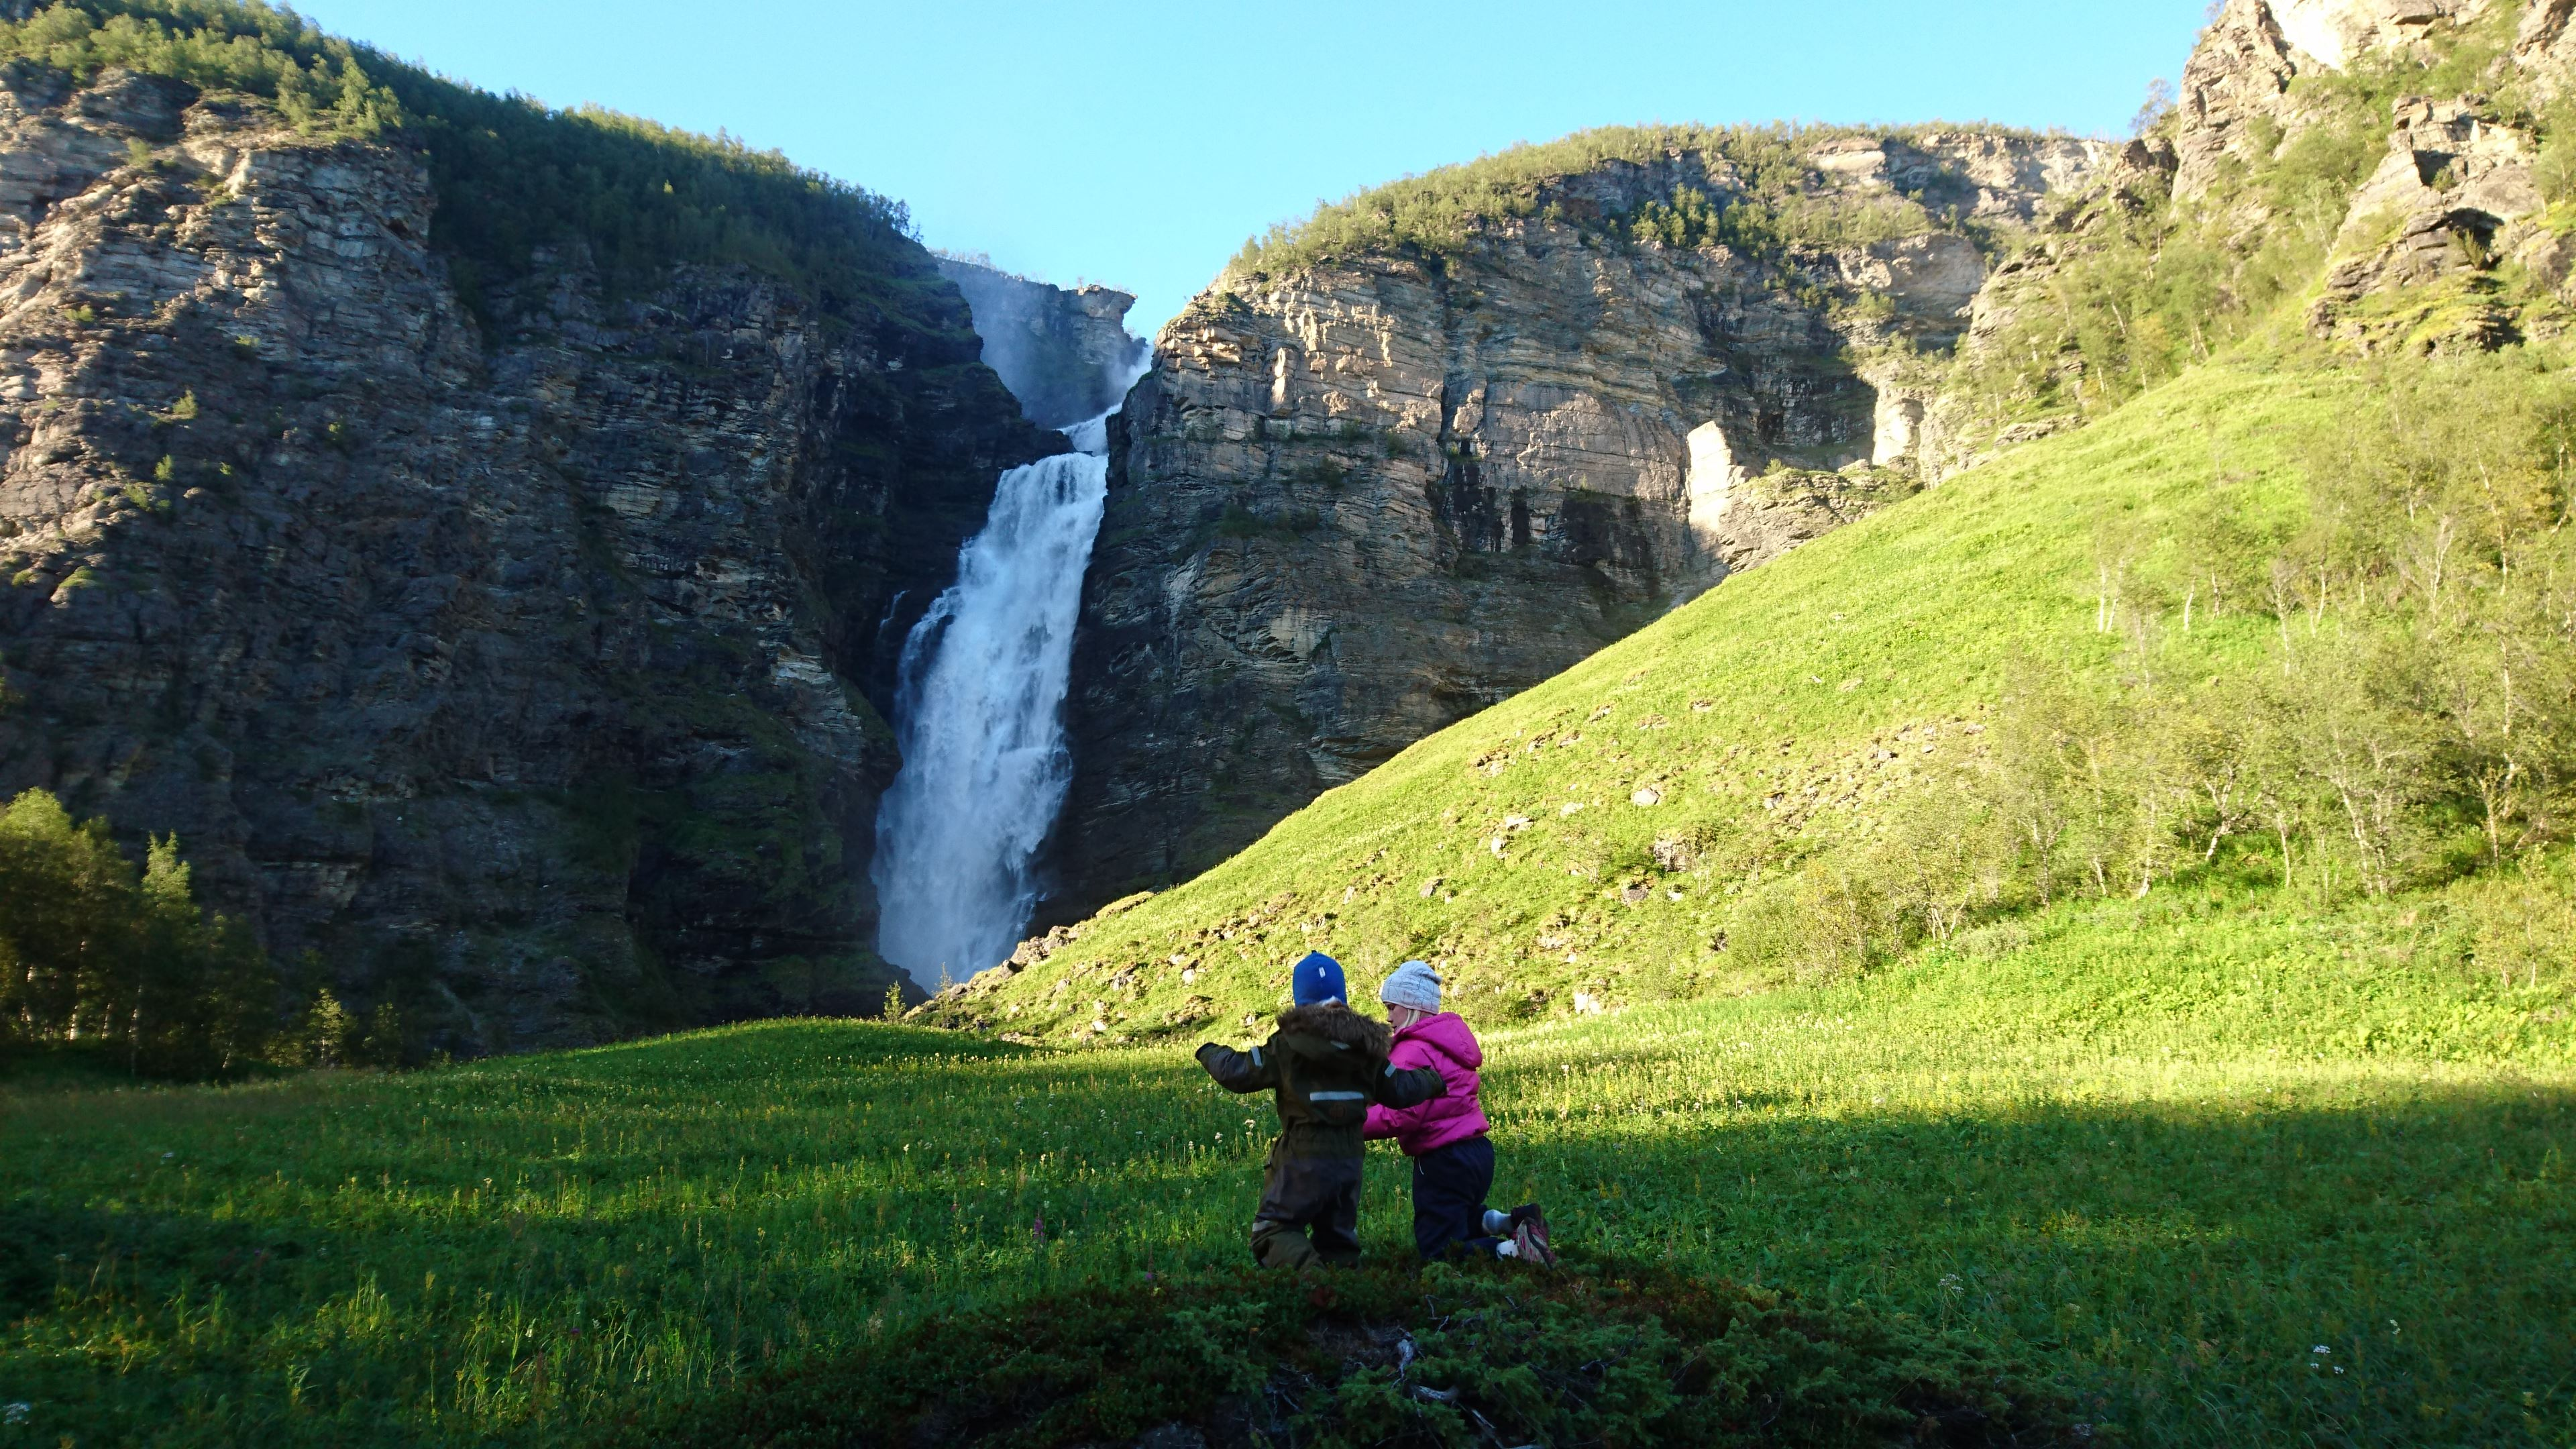 Guided tour to Mollisfossen